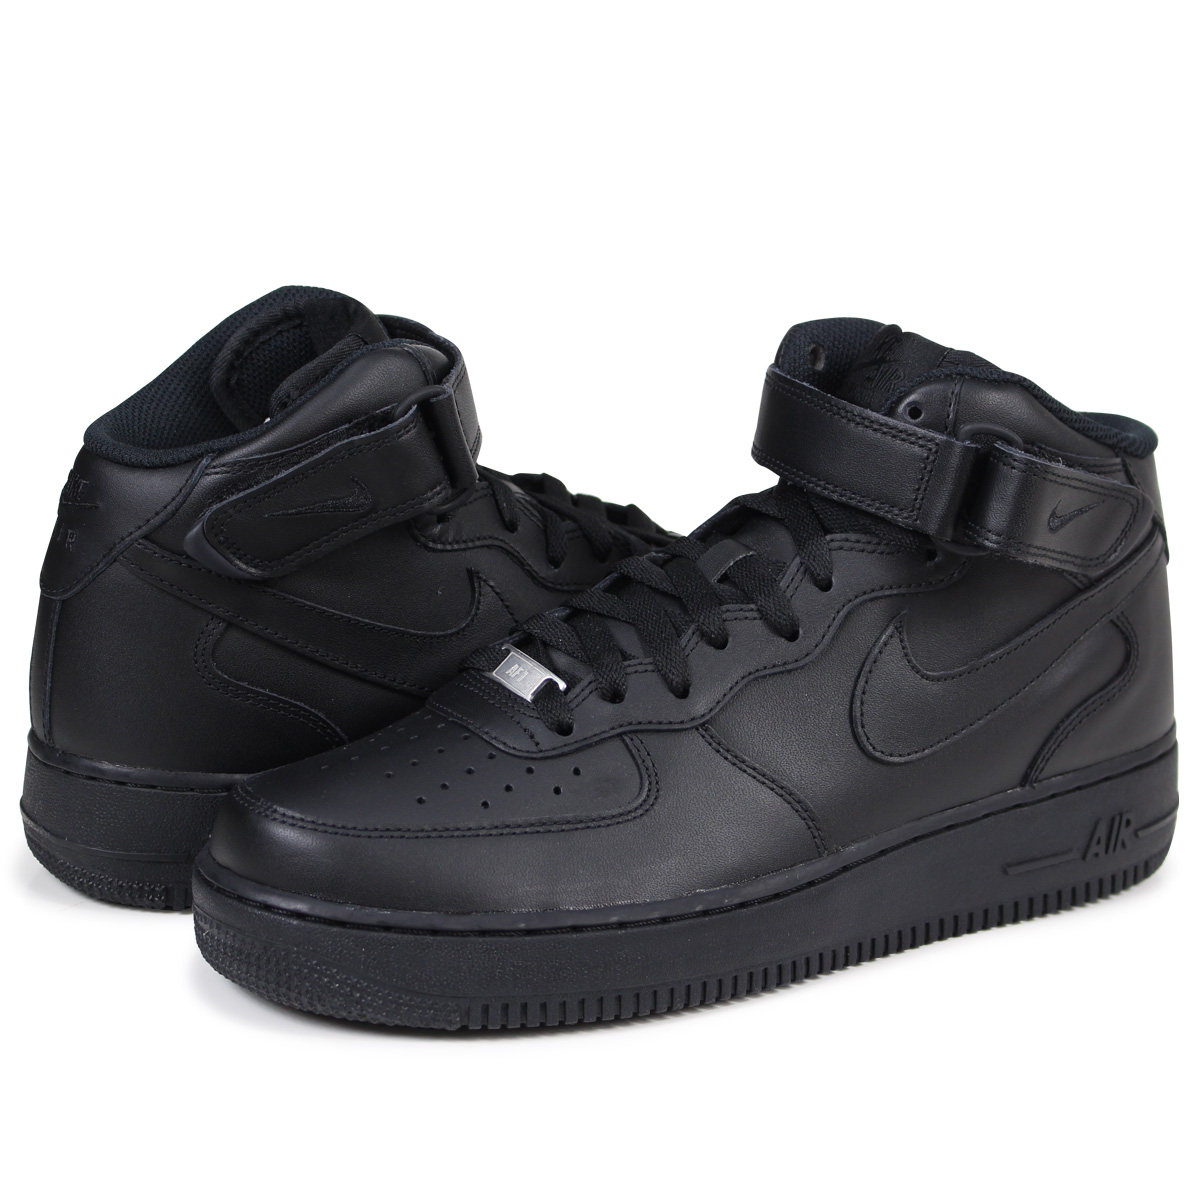 92c8c3cfa Whats up Sports  NIKE AIR FORCE 1 Nike air force 1 MID 07 sneakers ...